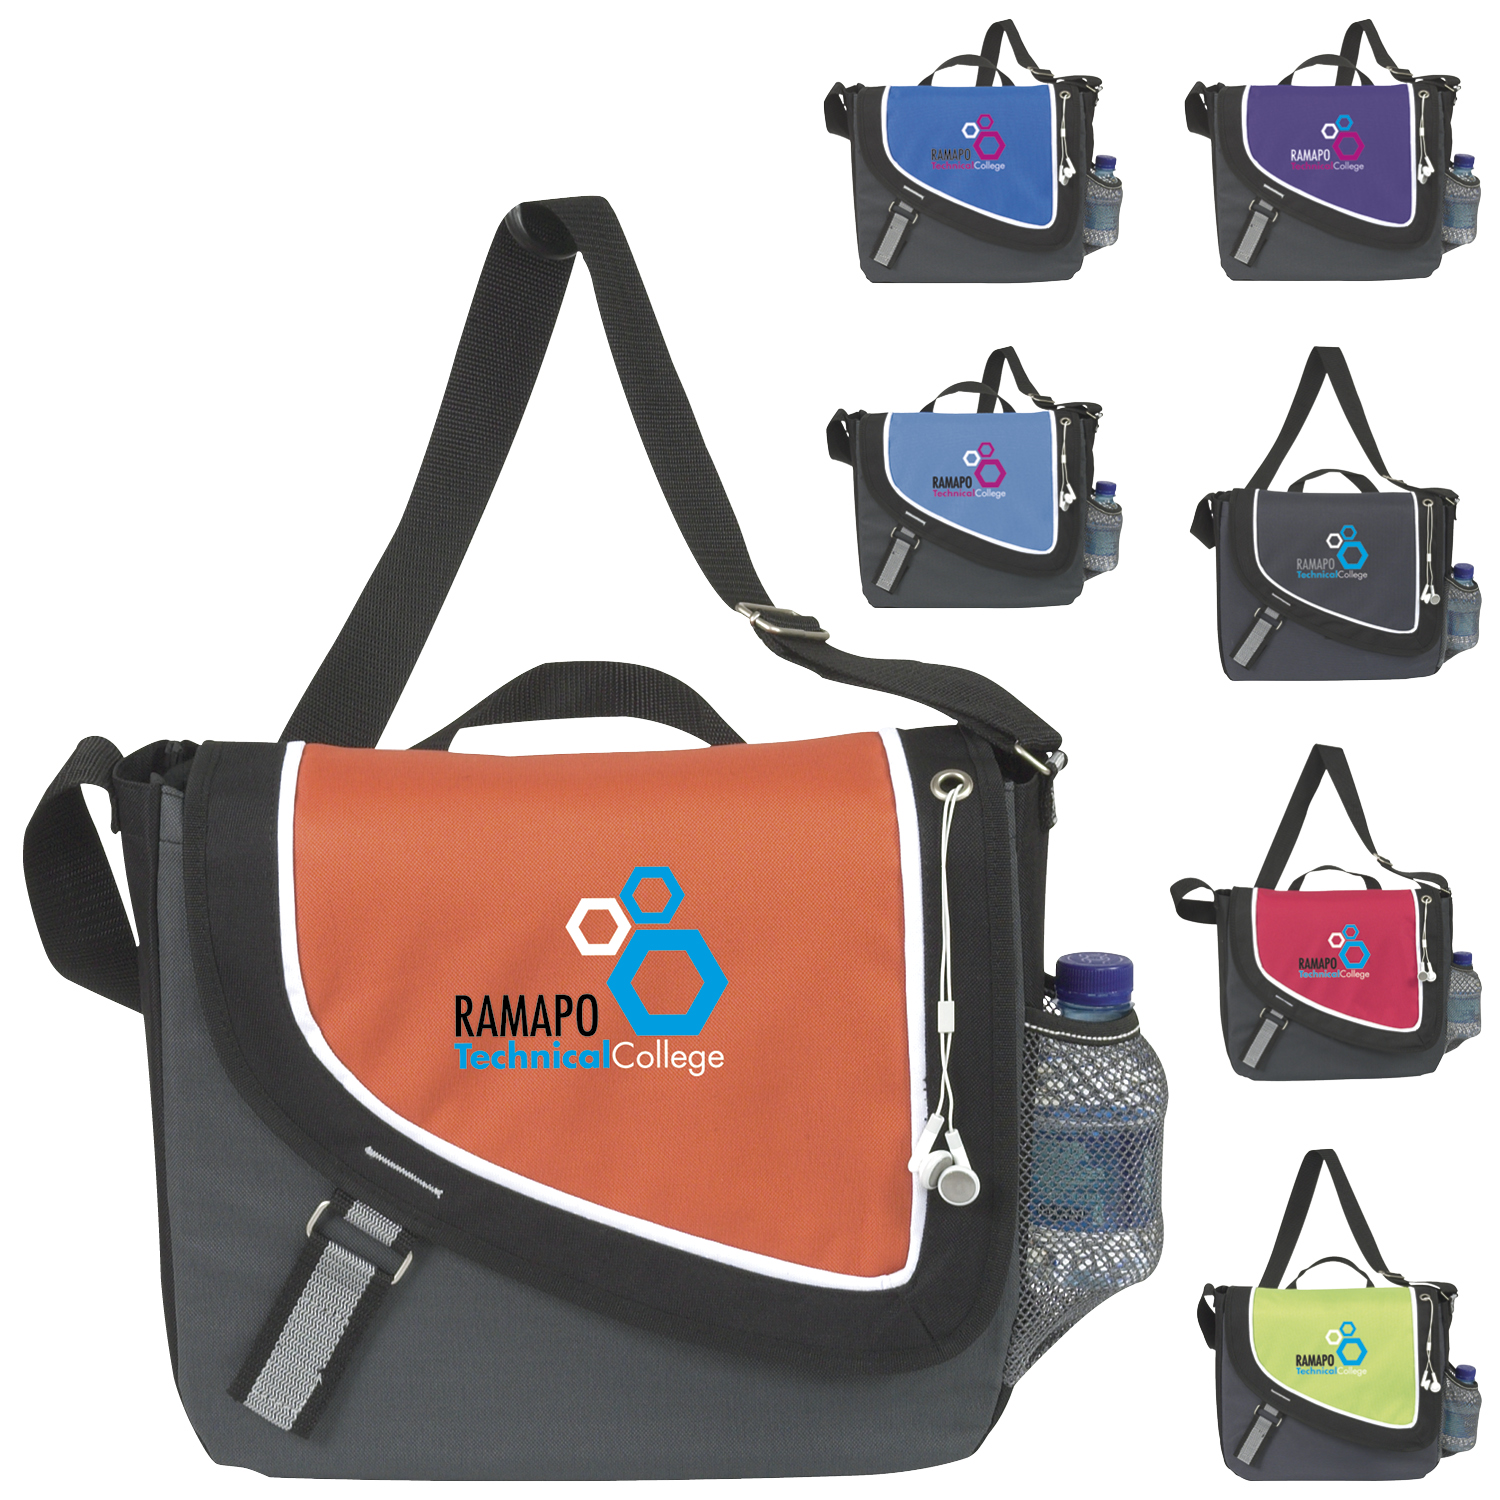 Atchison A Step Ahead Messenger Bag - 1 Colour Imprint, #AP3200